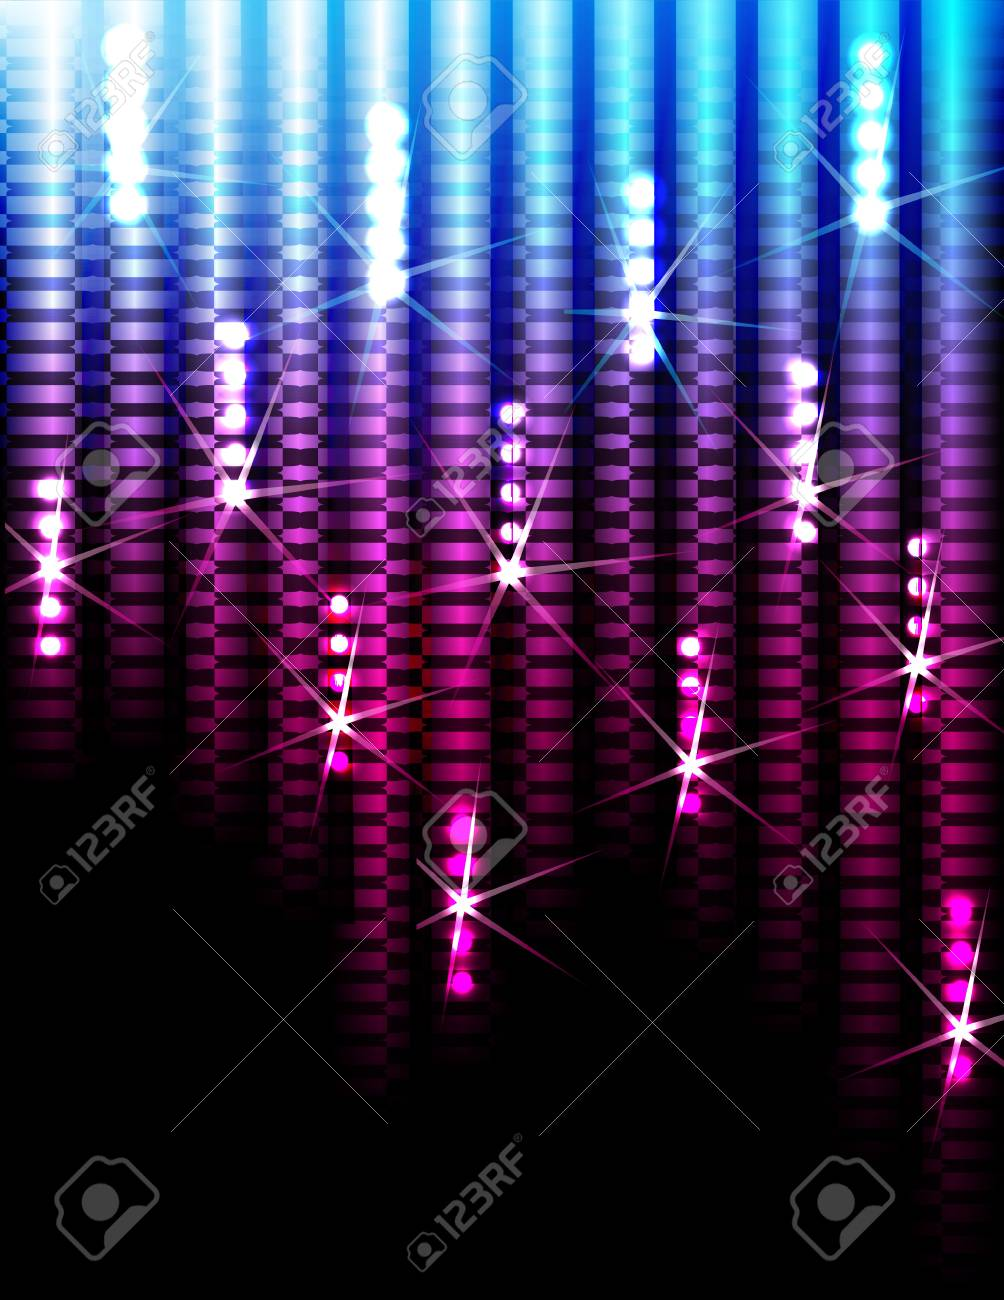 Disco Abstract Colorful Stripes on Black Background Stock Vector - 15057370